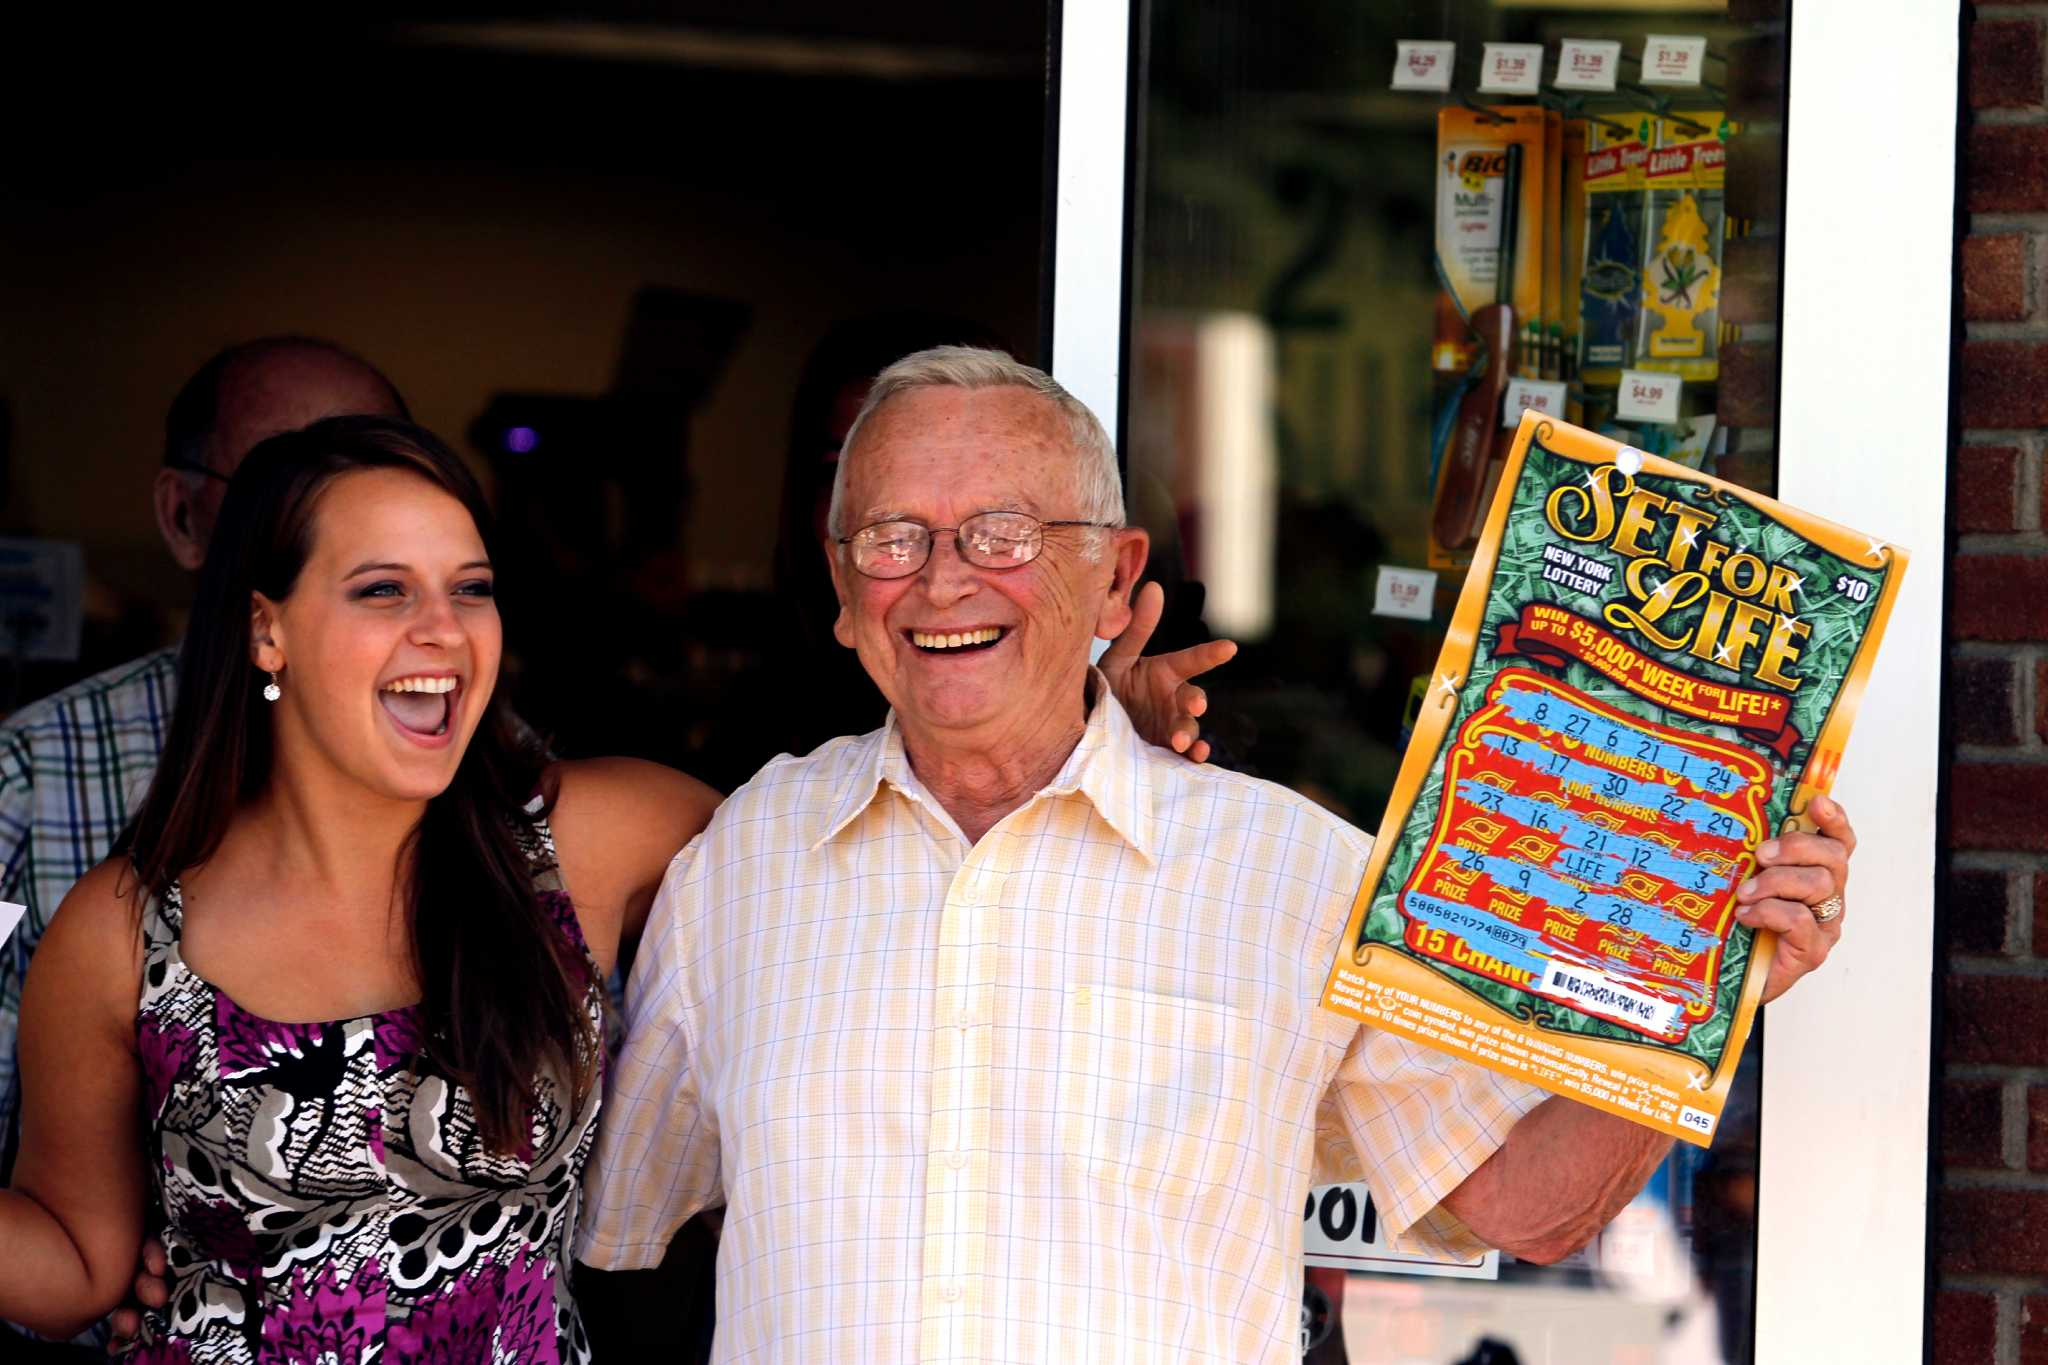 To celebrate the celebration: funny wedding lotteries